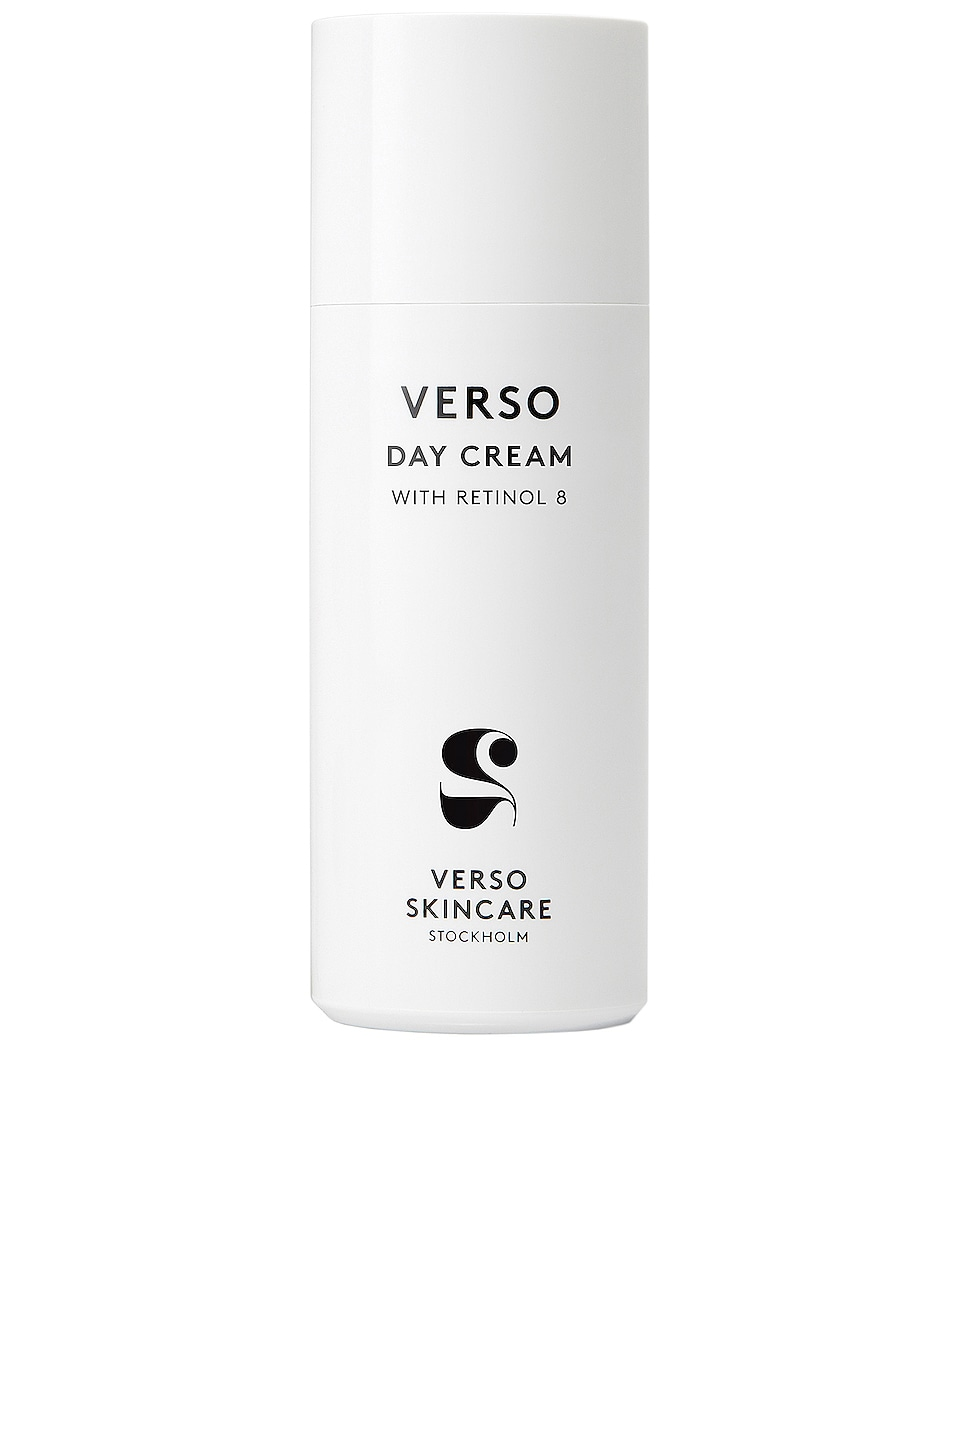 VERSO SKINCARE 2 Day Cream in All